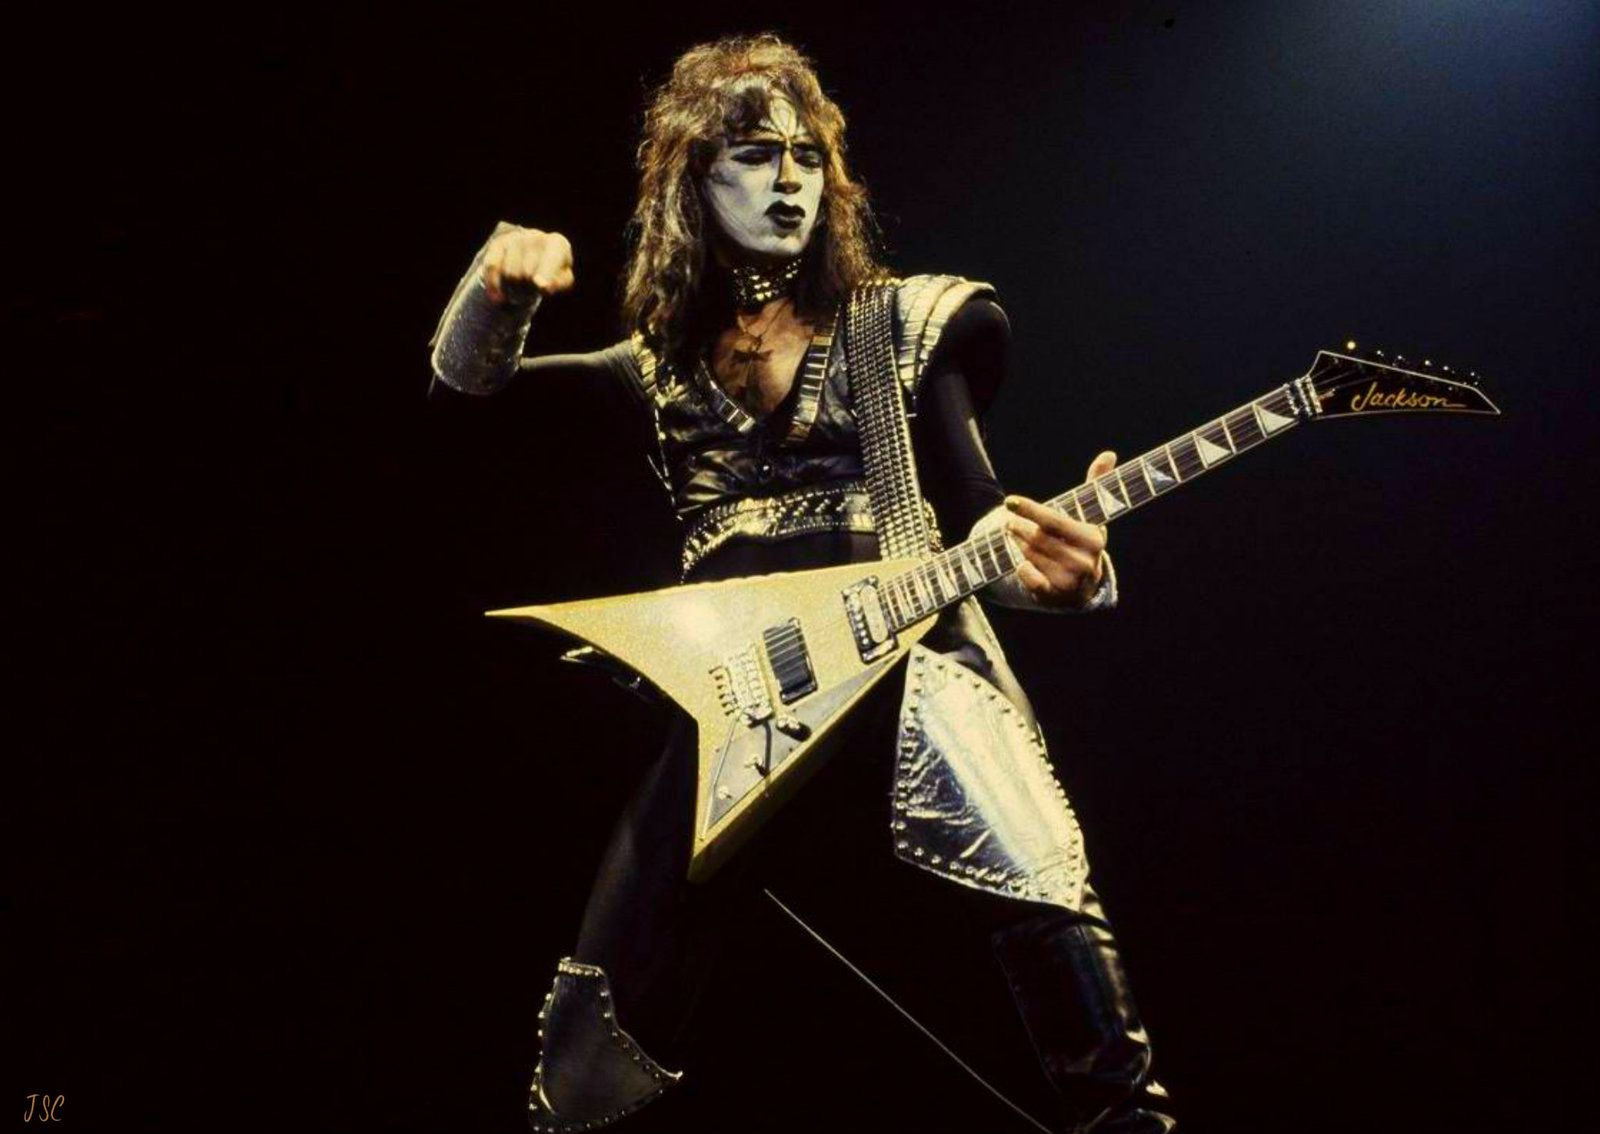 Vinnie Vincent, Creatures Of The Night Tour - Canada (January 14, 1983)